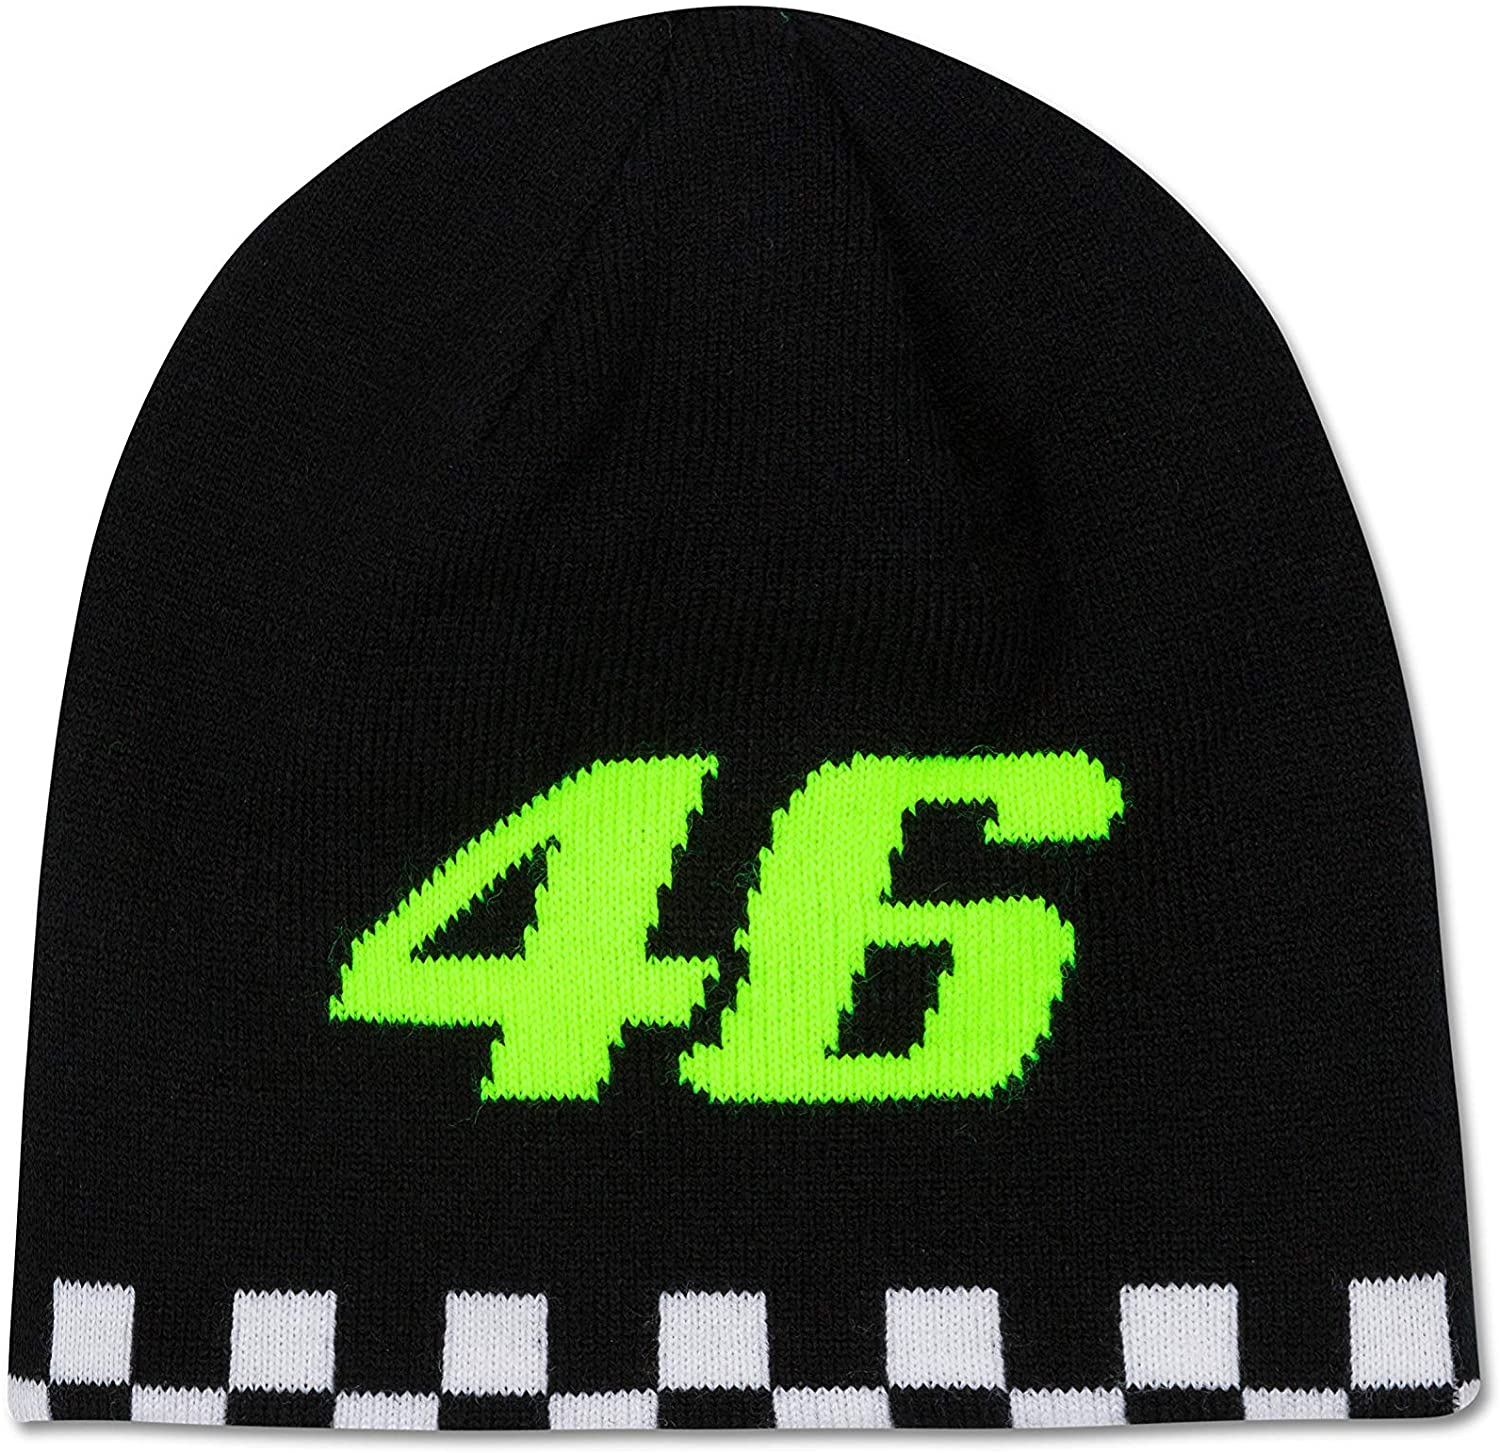 Valentino Rossi Kids Beanie VR46 MotoGP The Doctor Official 2020